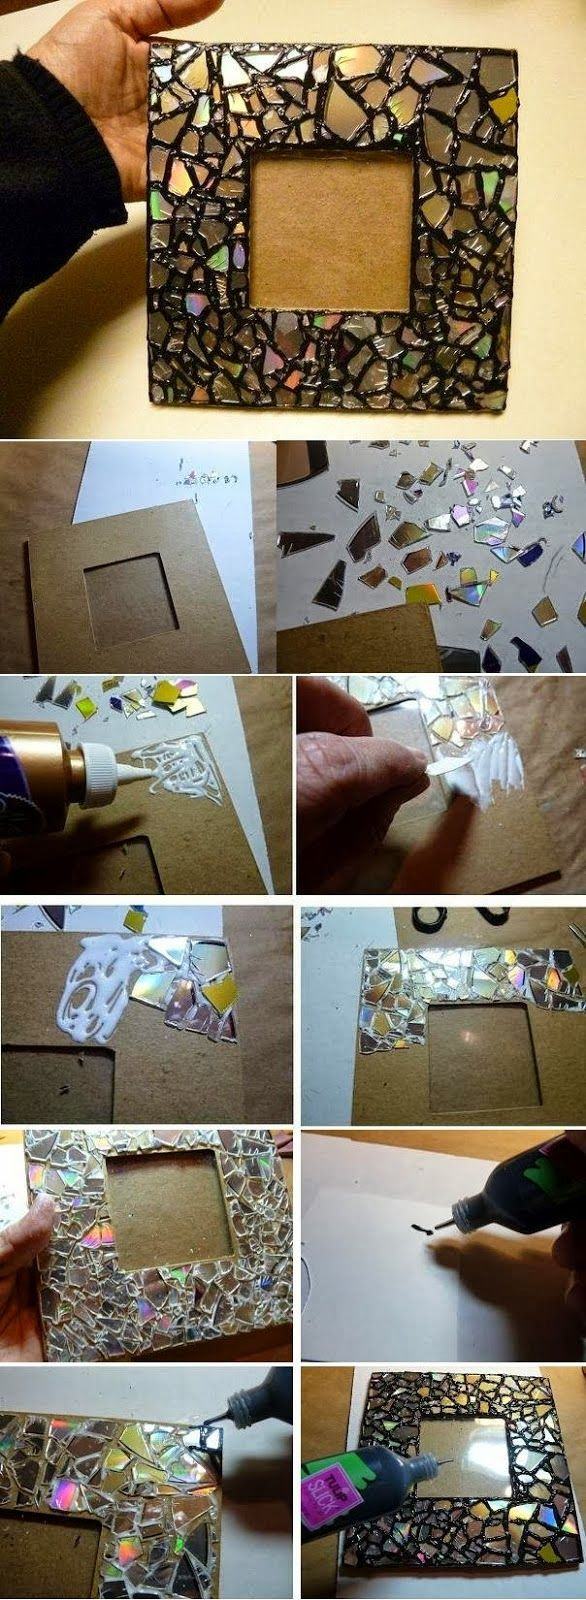 My DIY Projects: Make Mosaic Mirror Frame by Old CD - your-craft.co